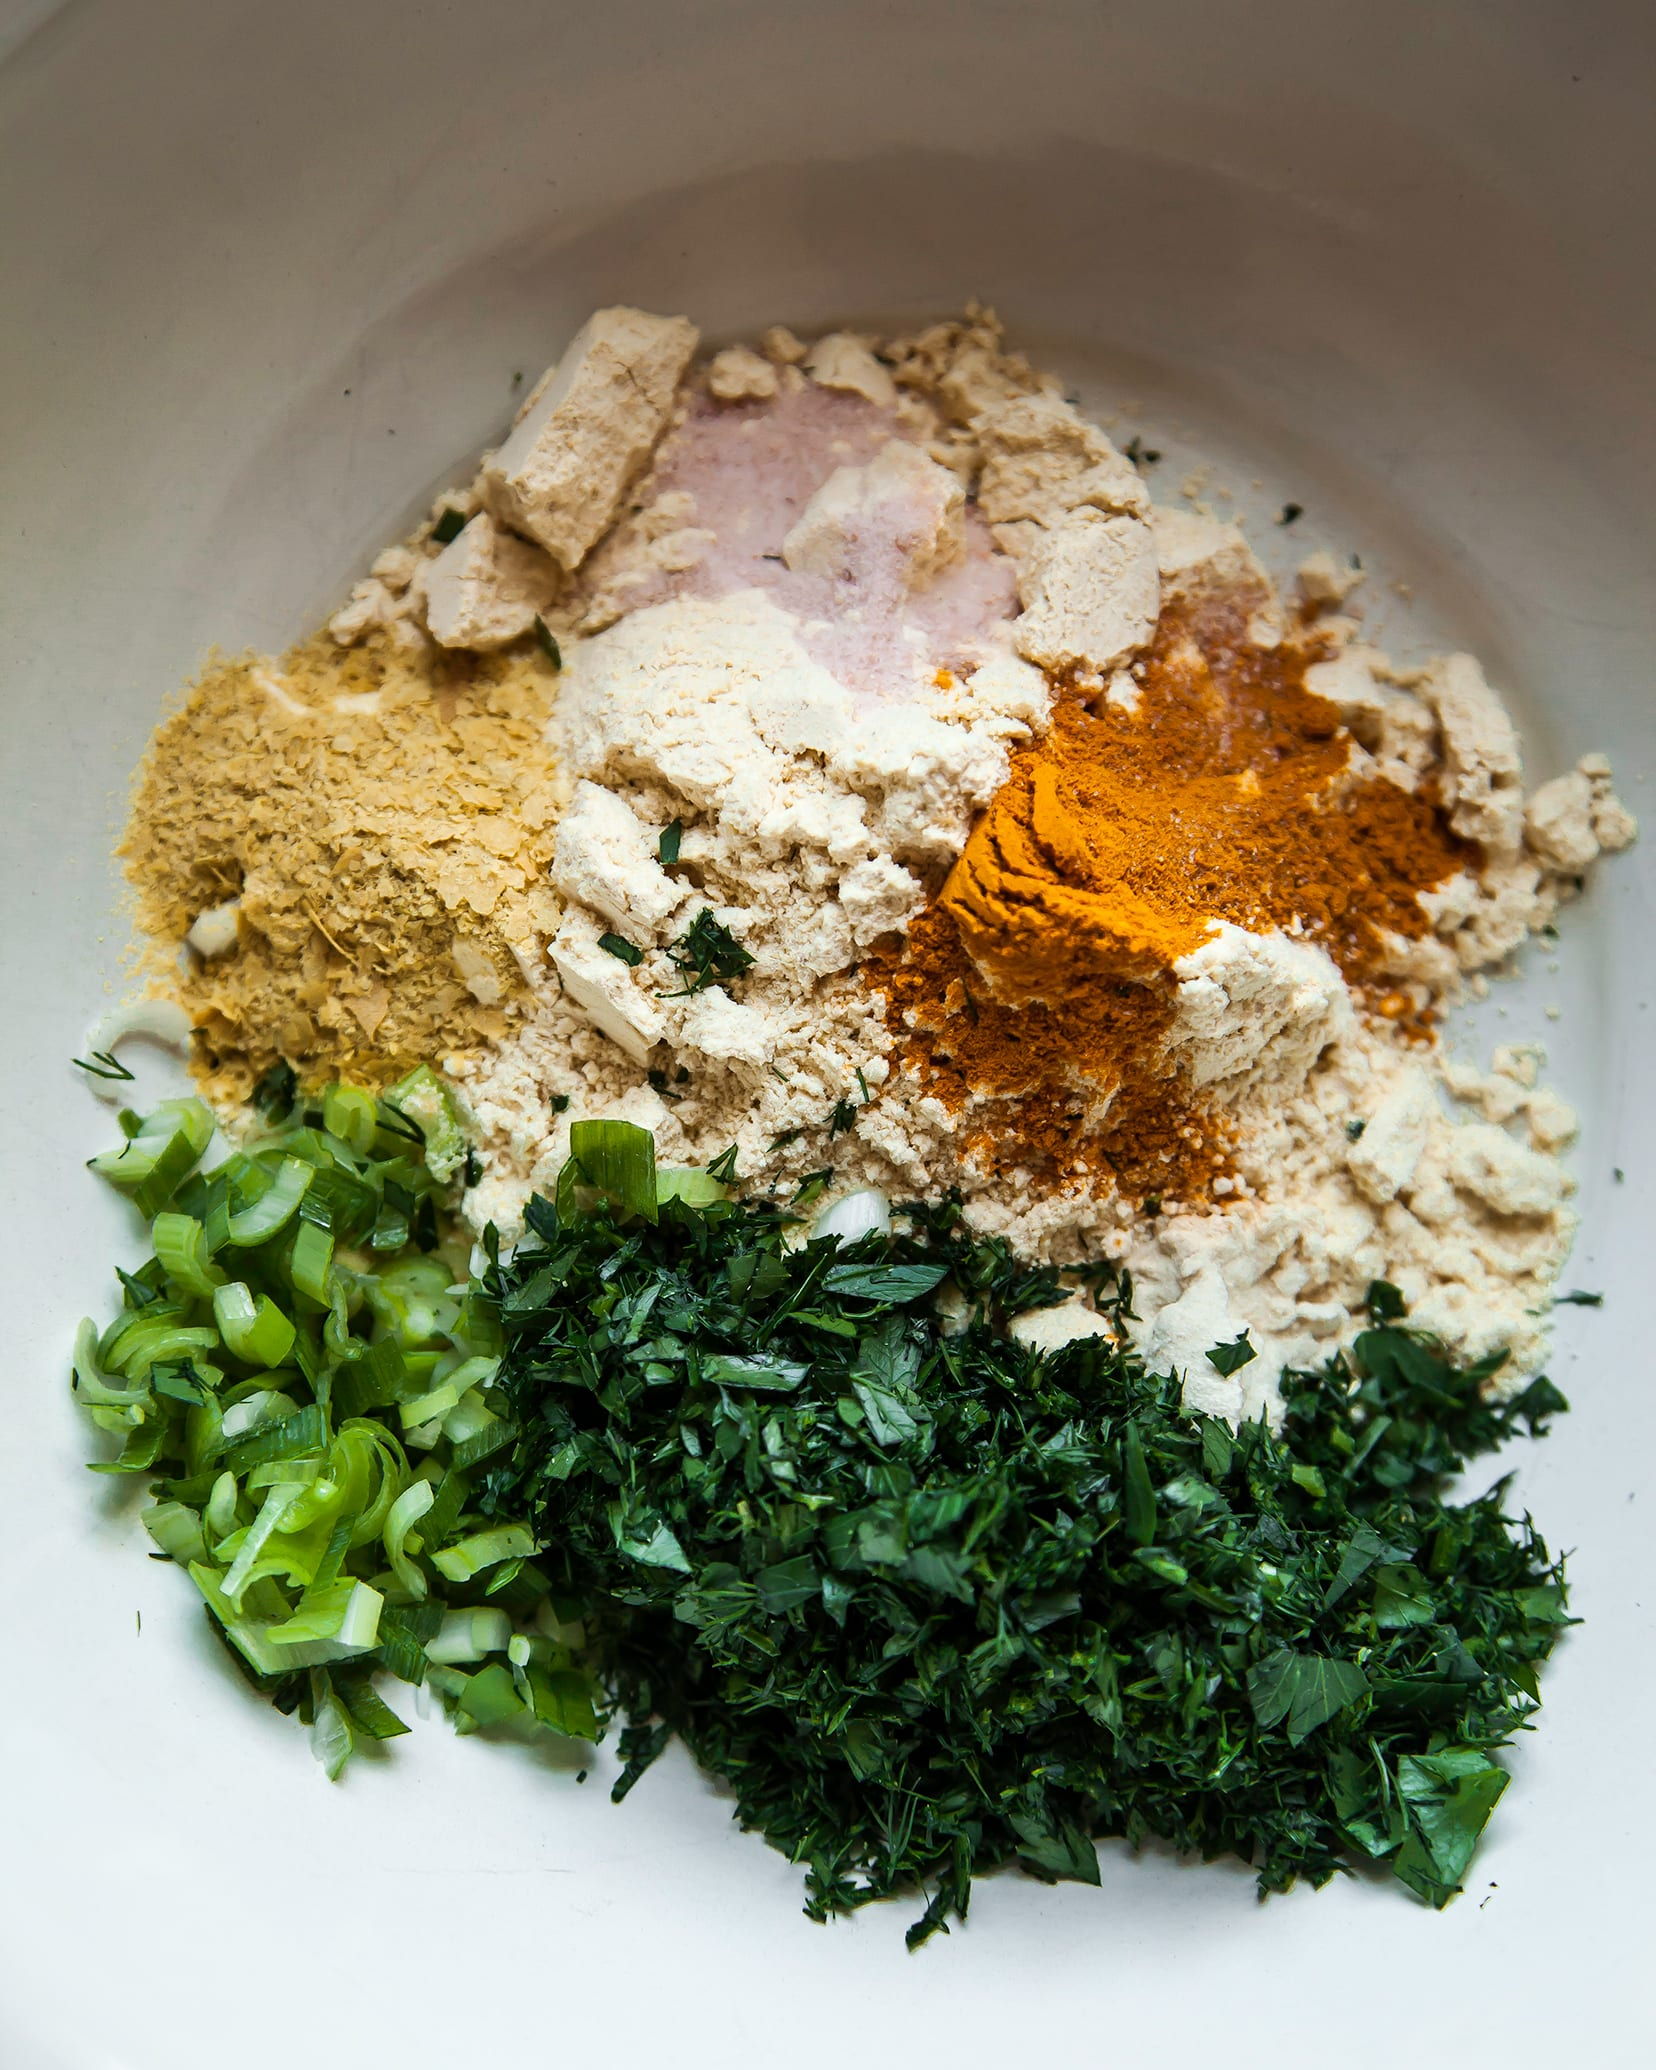 Image is an overhead shot of chickpea flour, herbs, and spices in a bowl.